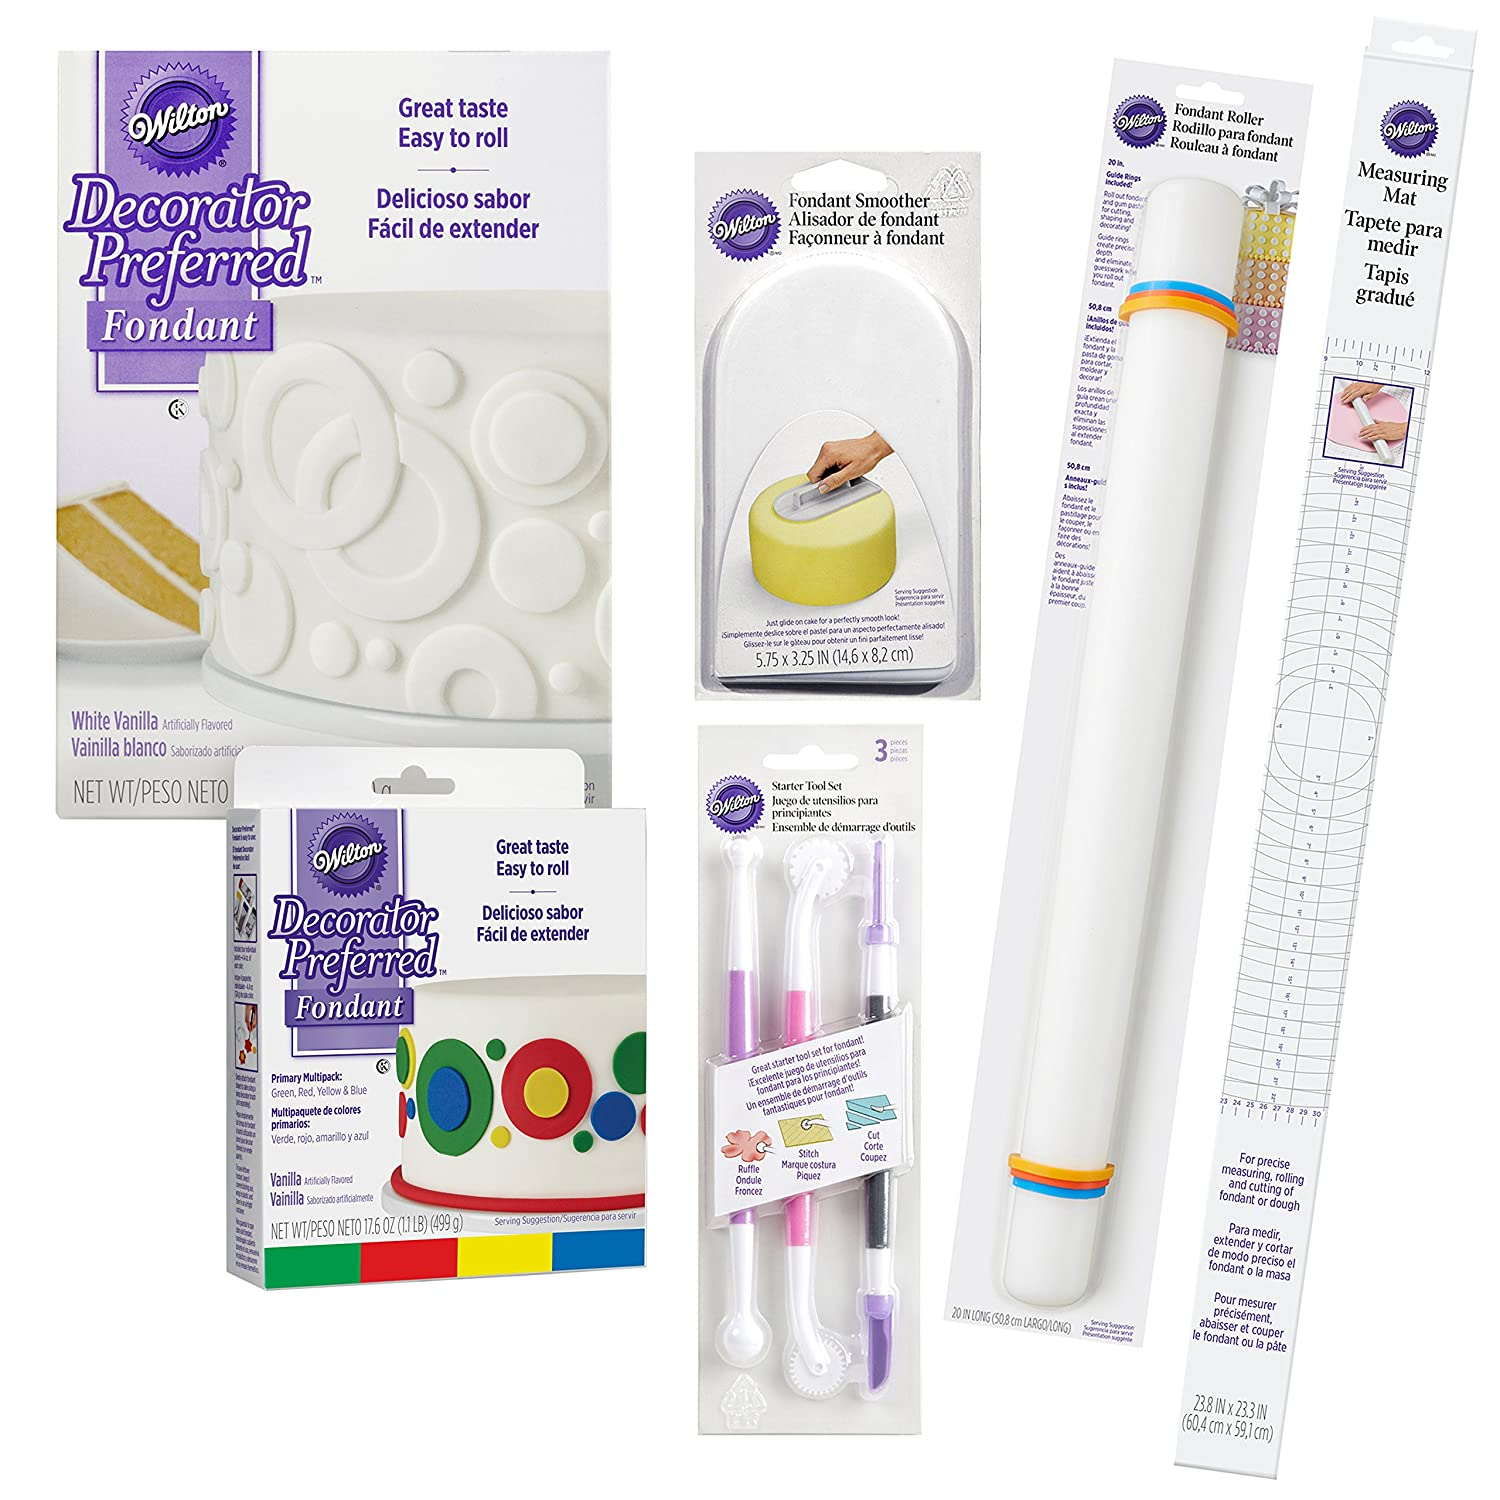 Amazon.com: Wilton Fondant Tool Set, Intermediate, 15-Piece - White and Primary Color Fondant, Smoother, Rolling Pin, : Kitchen & Dining